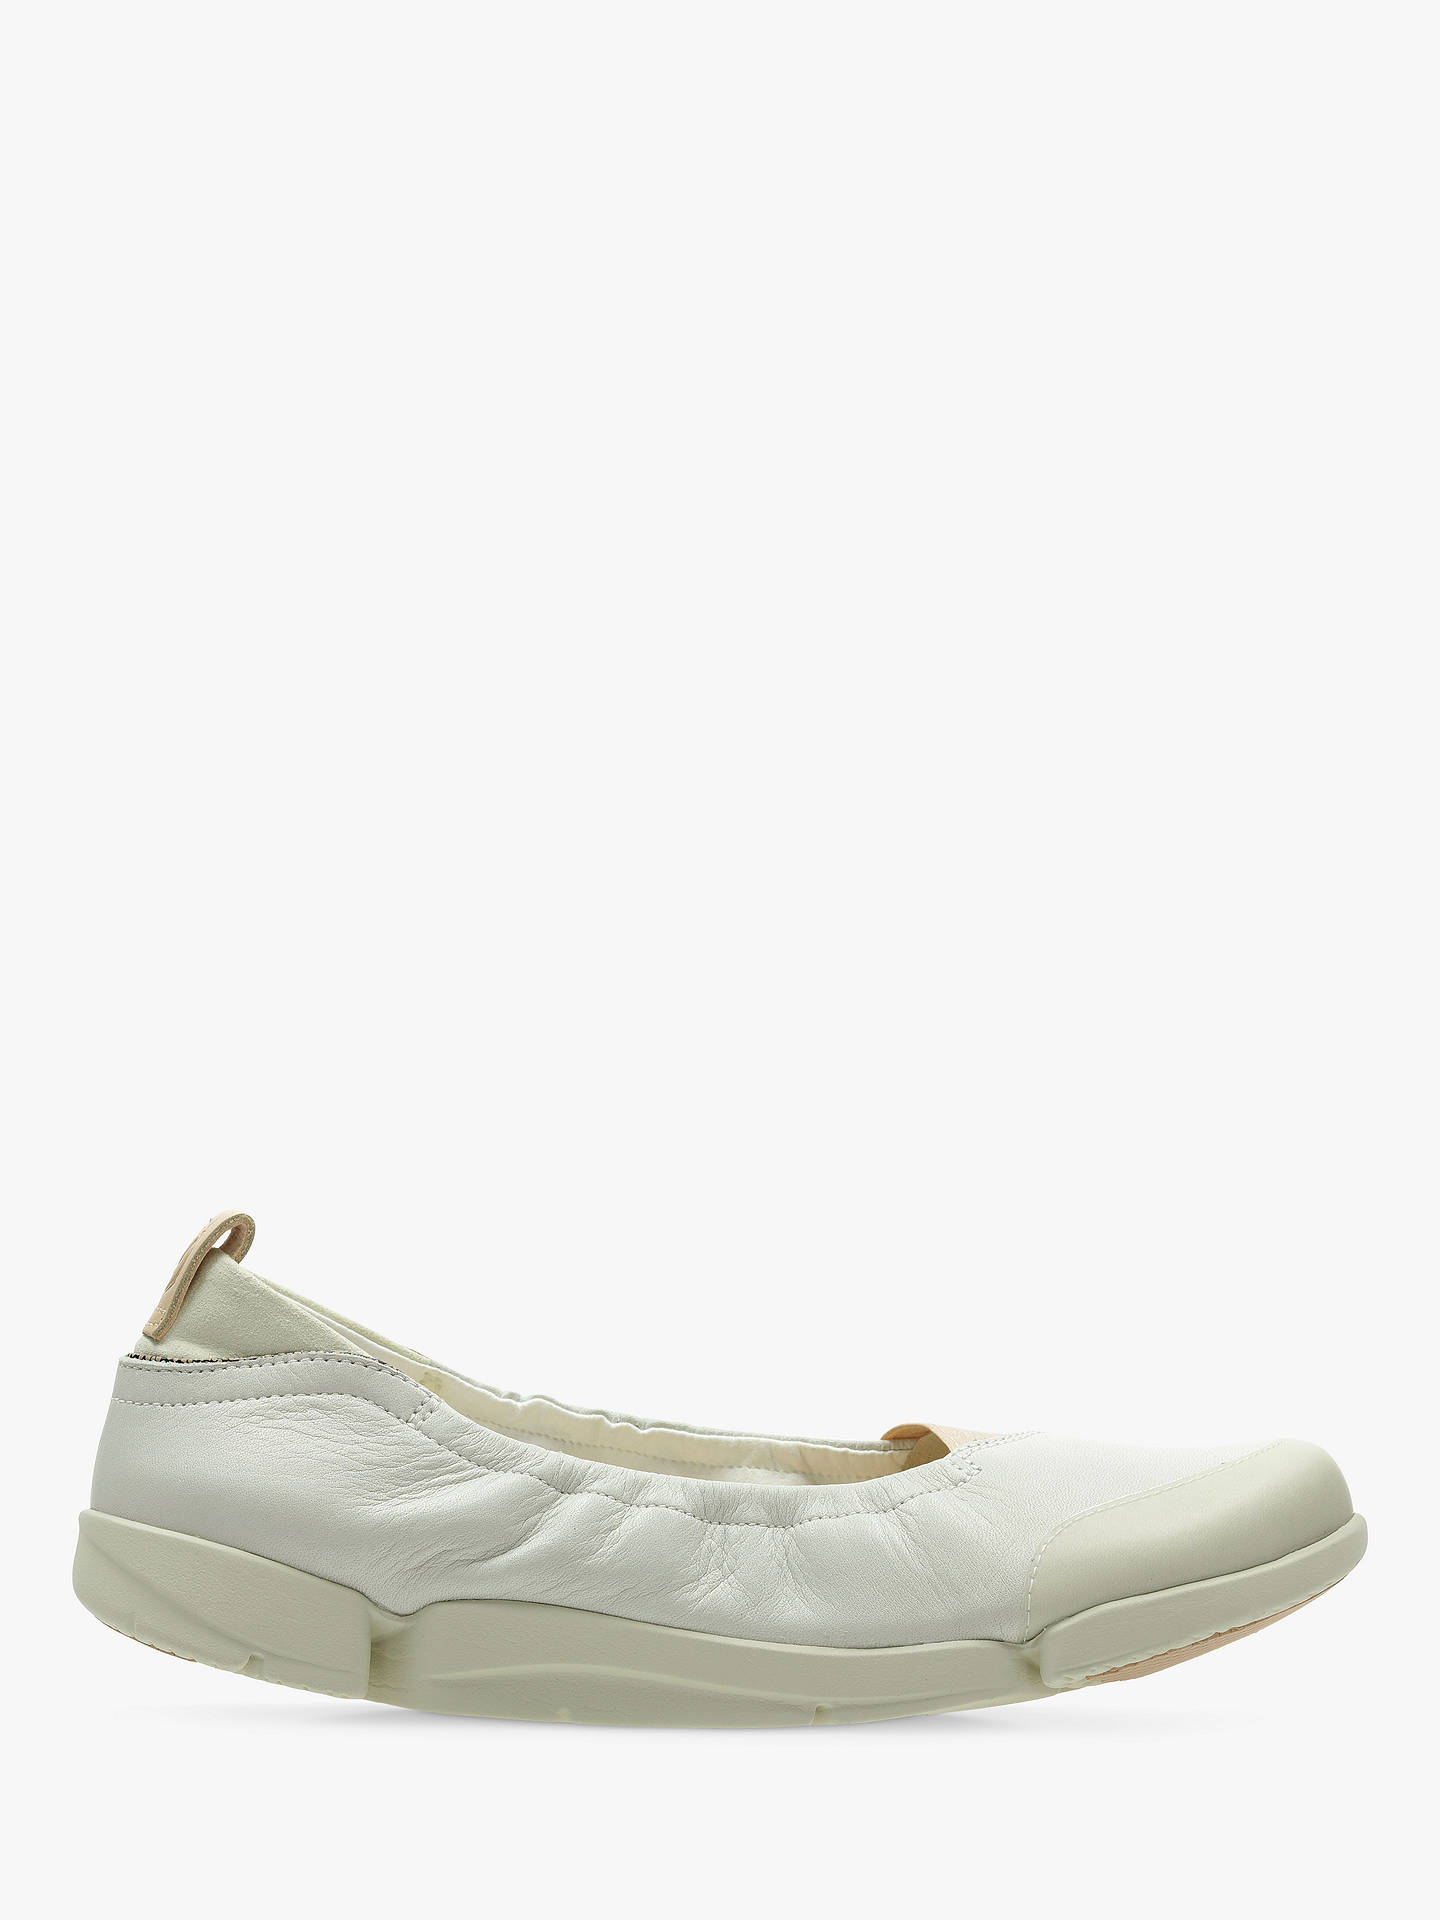 b8911ae5a8 Buy Clarks Tri Adapt Sporty Pumps, White Leather, 5 Online at johnlewis.com  ...